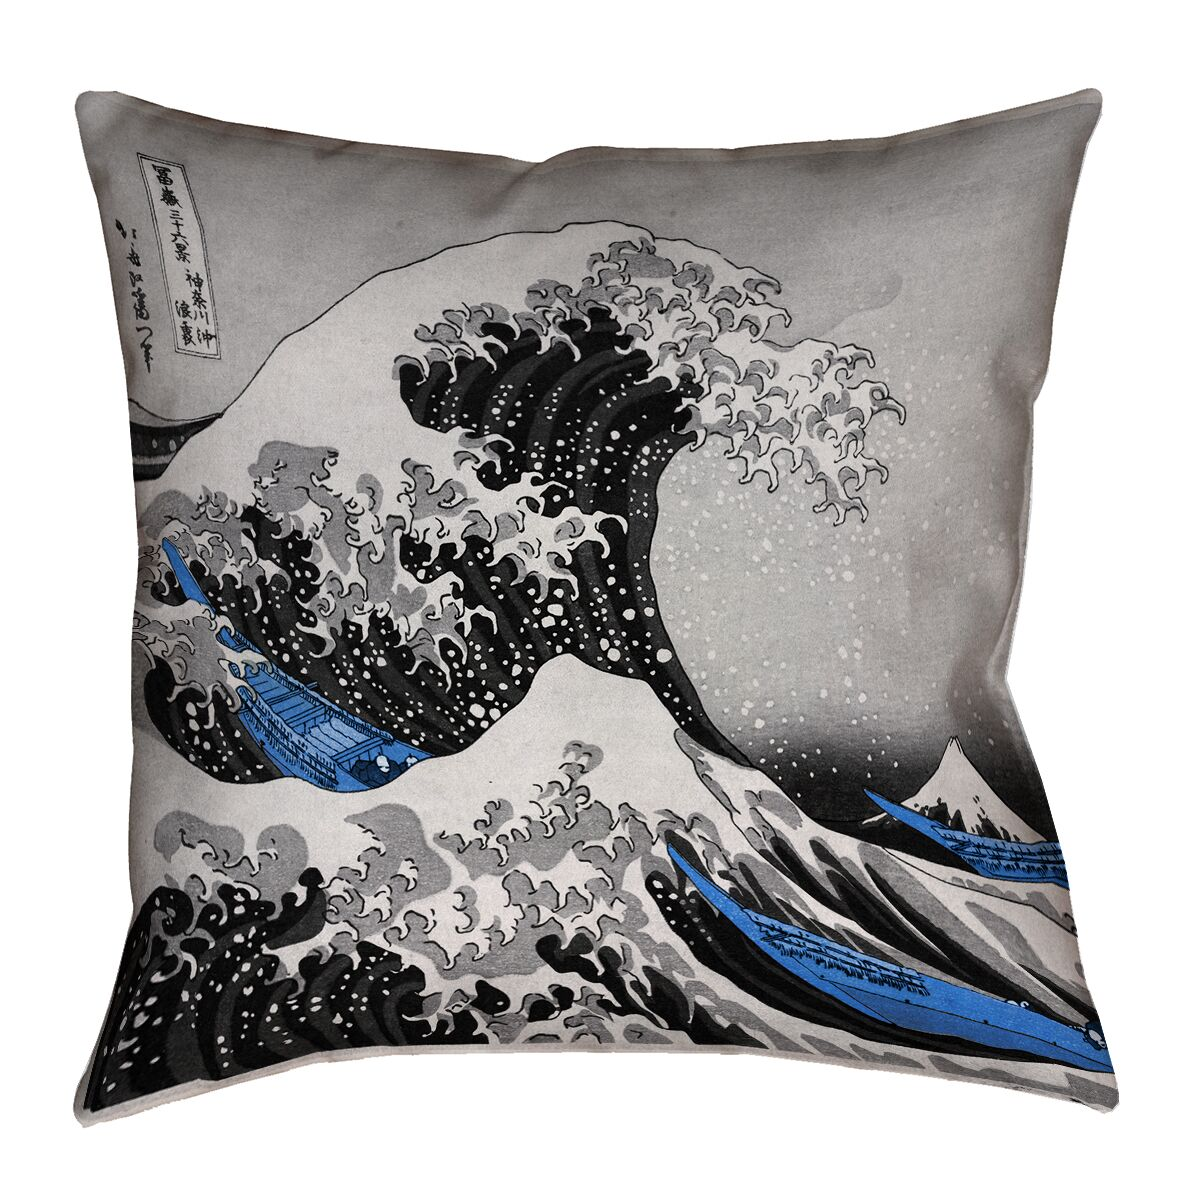 Raritan The Great Wave Square Outdoor Waterproof Throw Pillow Size: 20